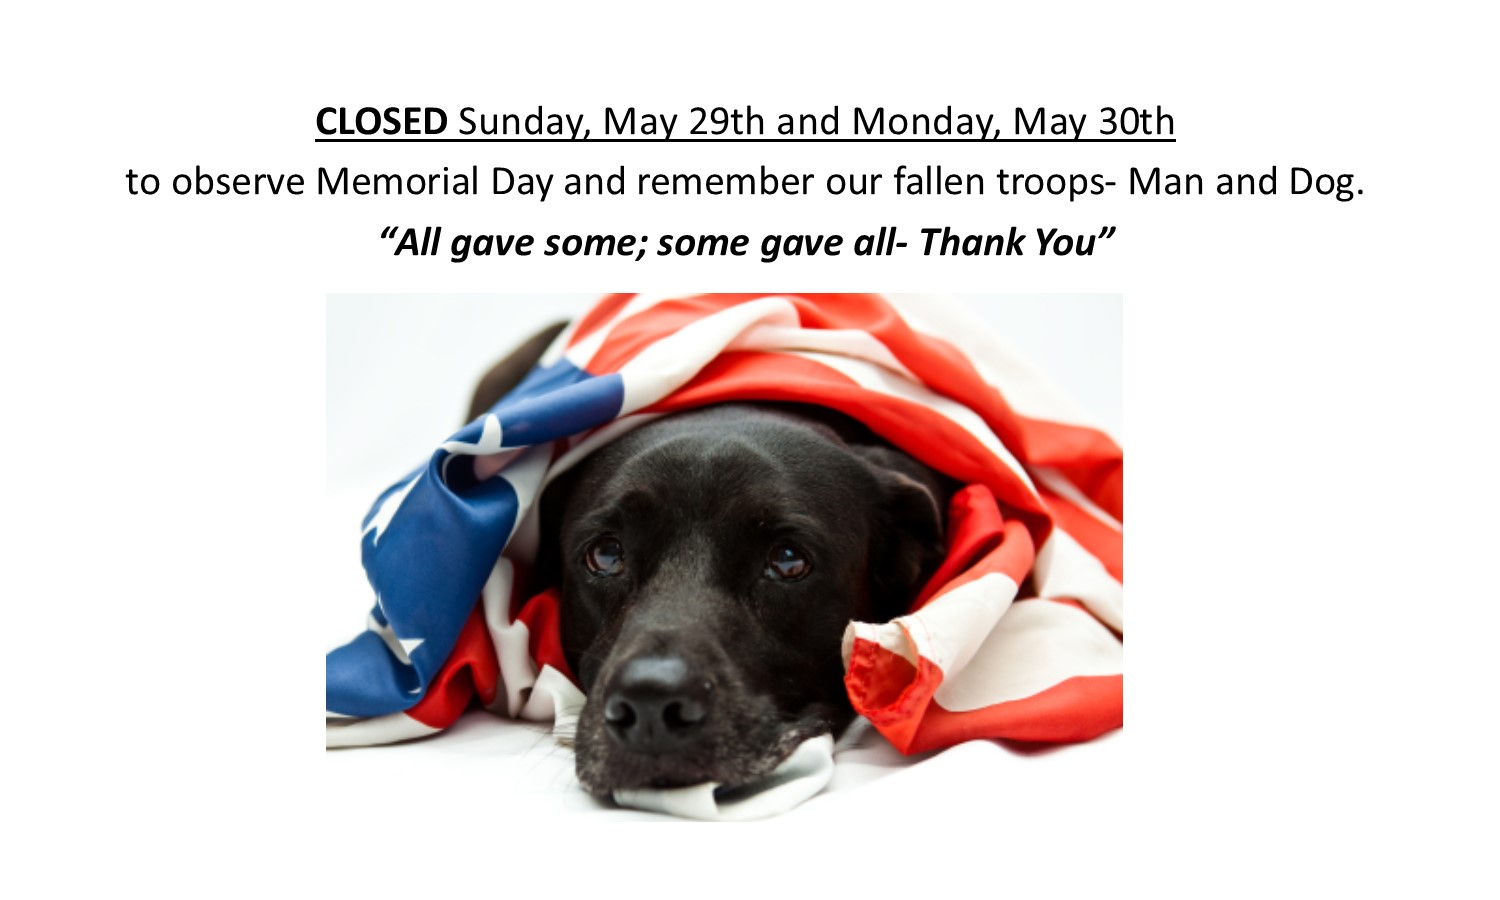 Memorial Day Closed